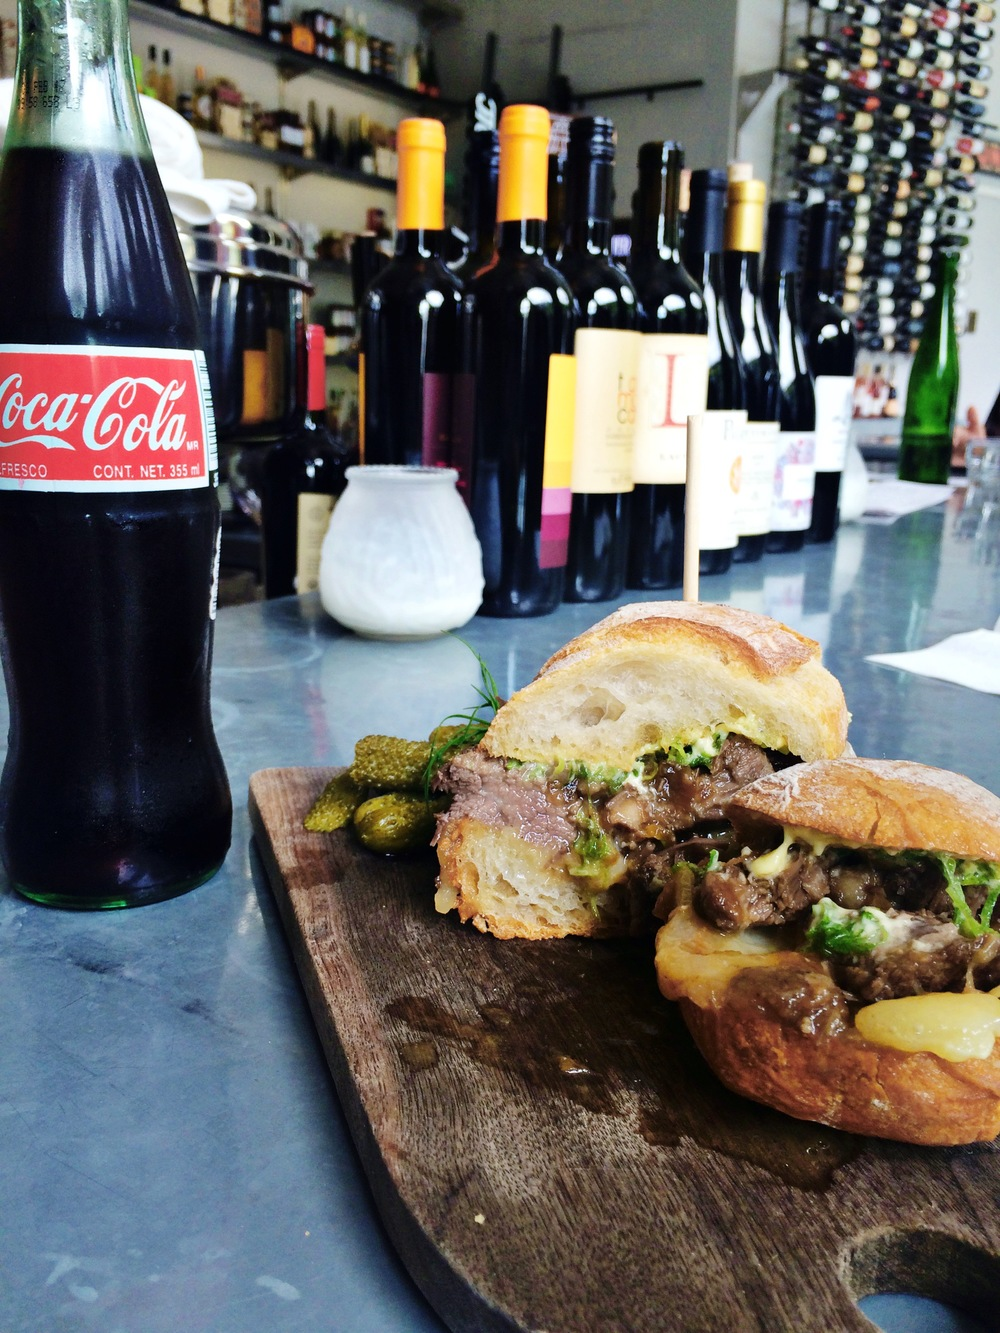 #shareacoke with a sandwich lunch